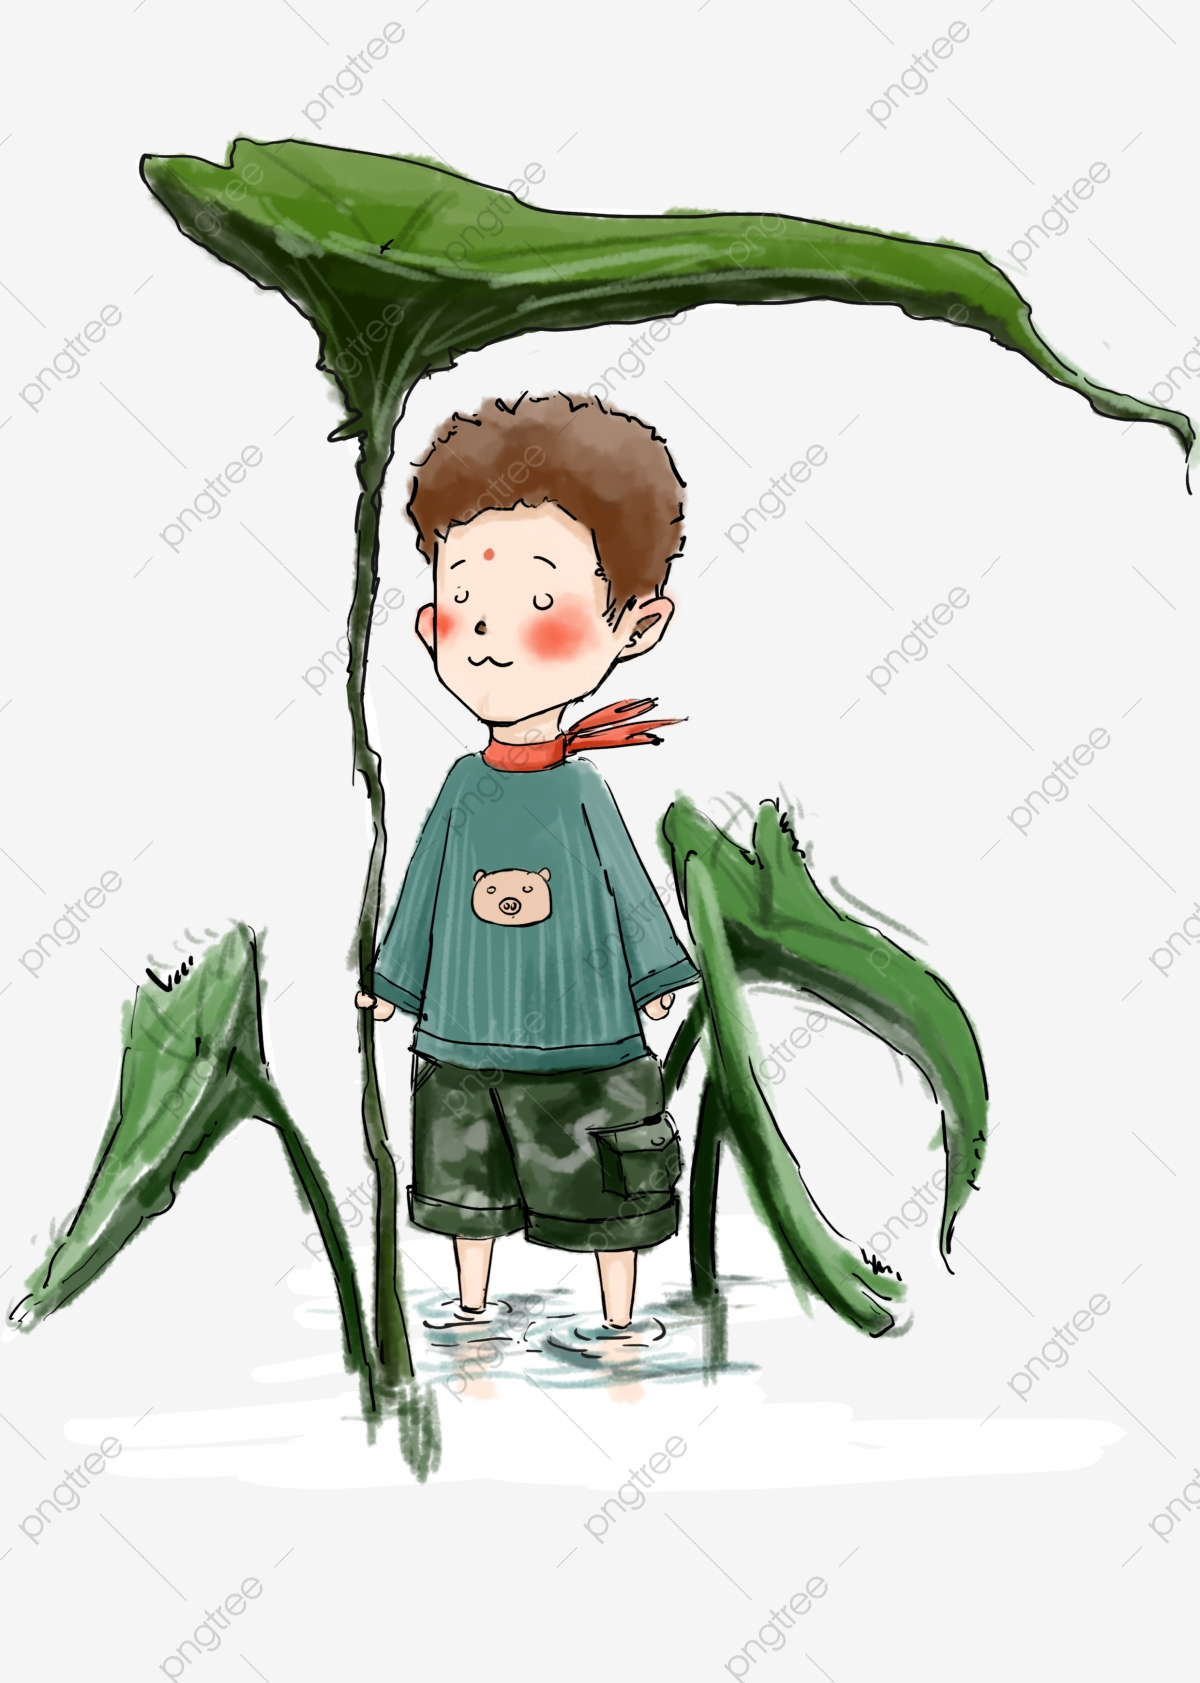 Cartoon Cute Little Girl Taking Lotus Flower Young Boy With Lotus Flower Cute Scene Villain Lotus Leaf Png Transparent Clipart Image And Psd File For Free Download